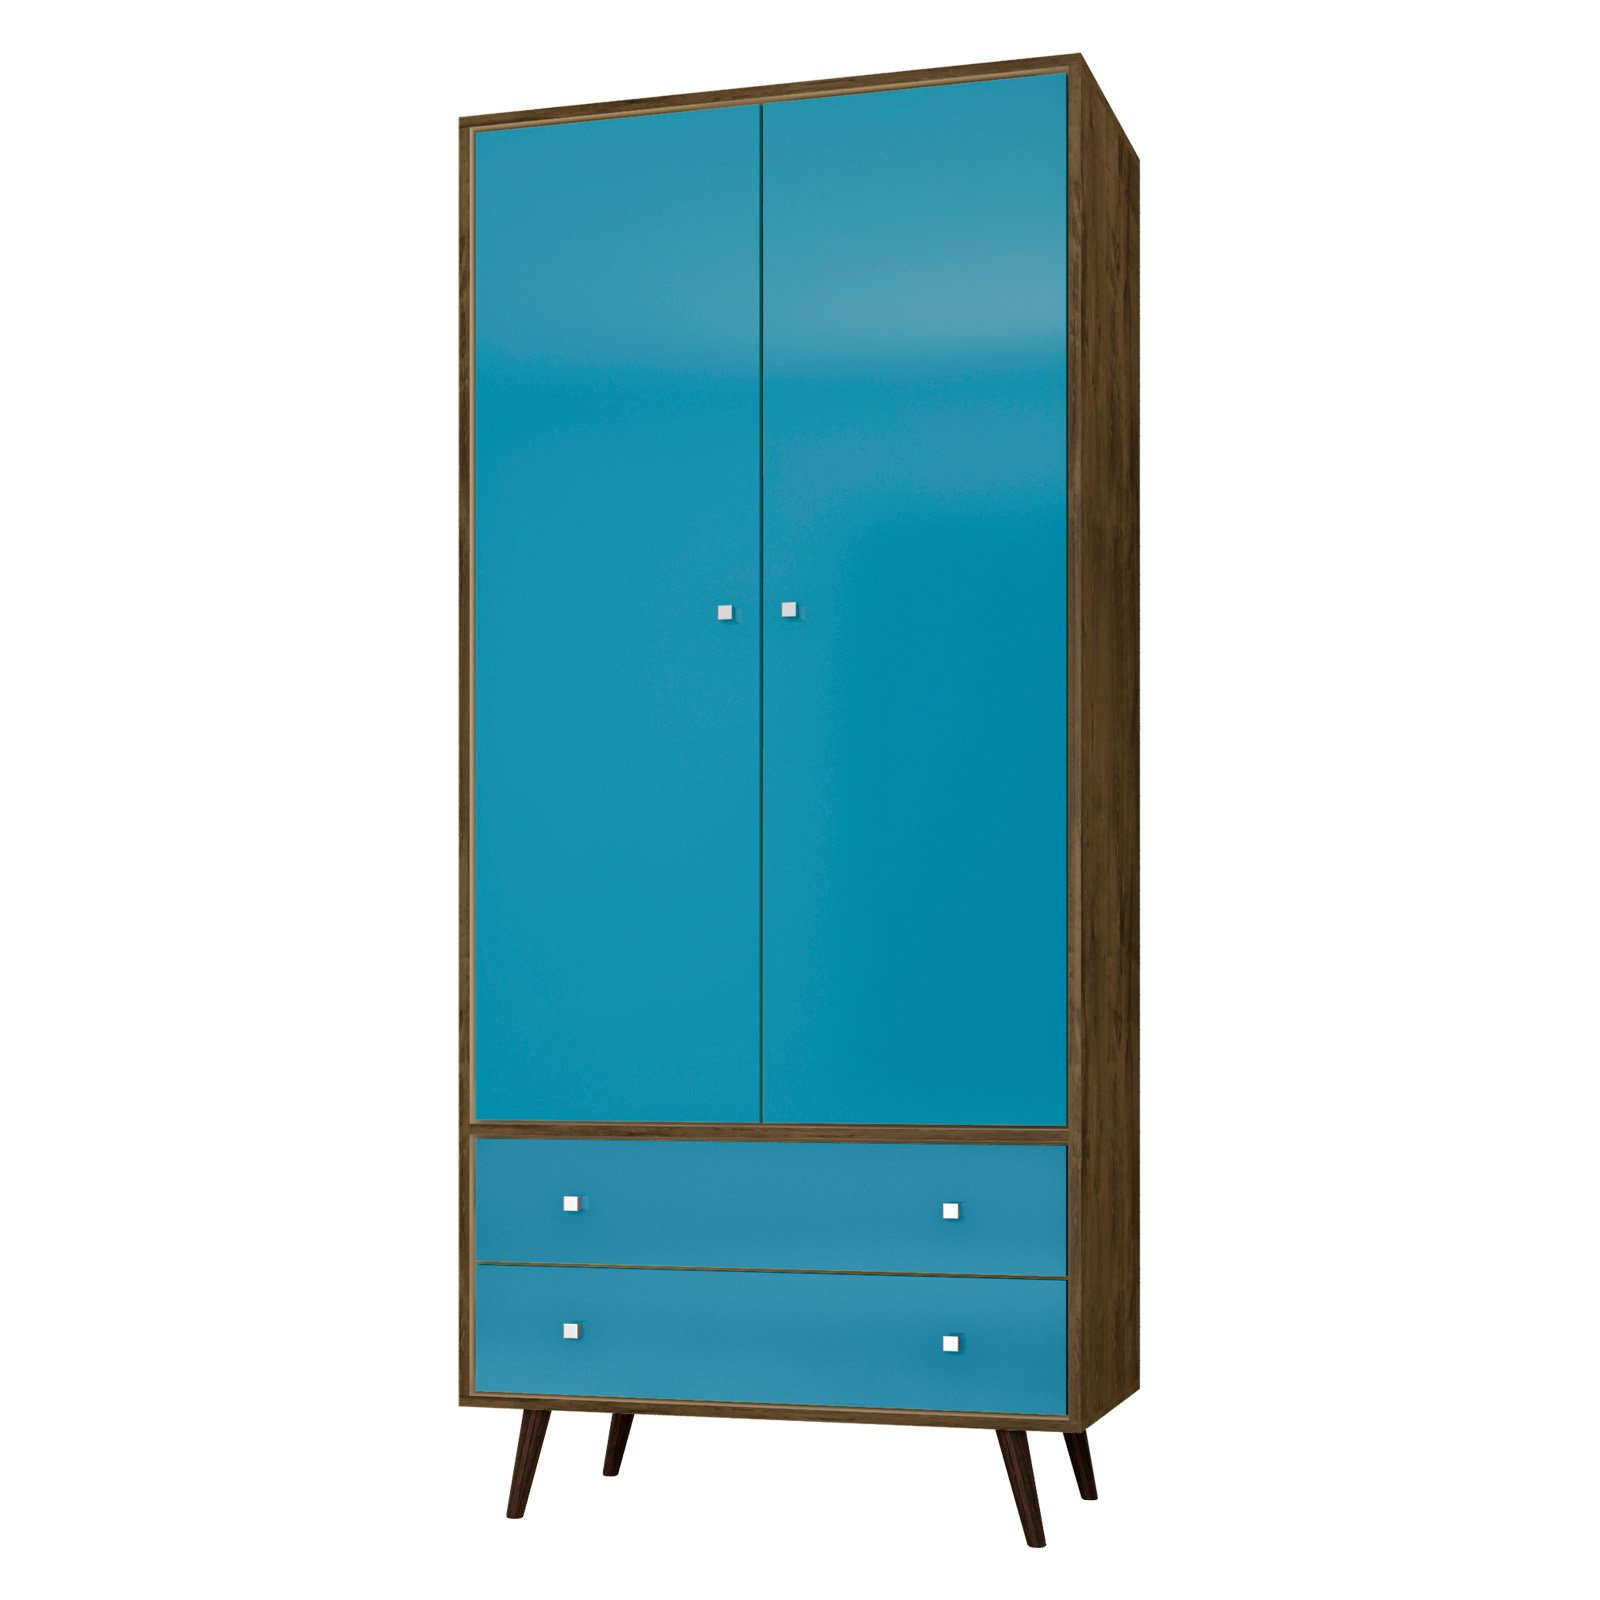 amazon she wardrobe com w comforter d x comfort collection dp drawers chelsea armoire he open closet with manhattan h